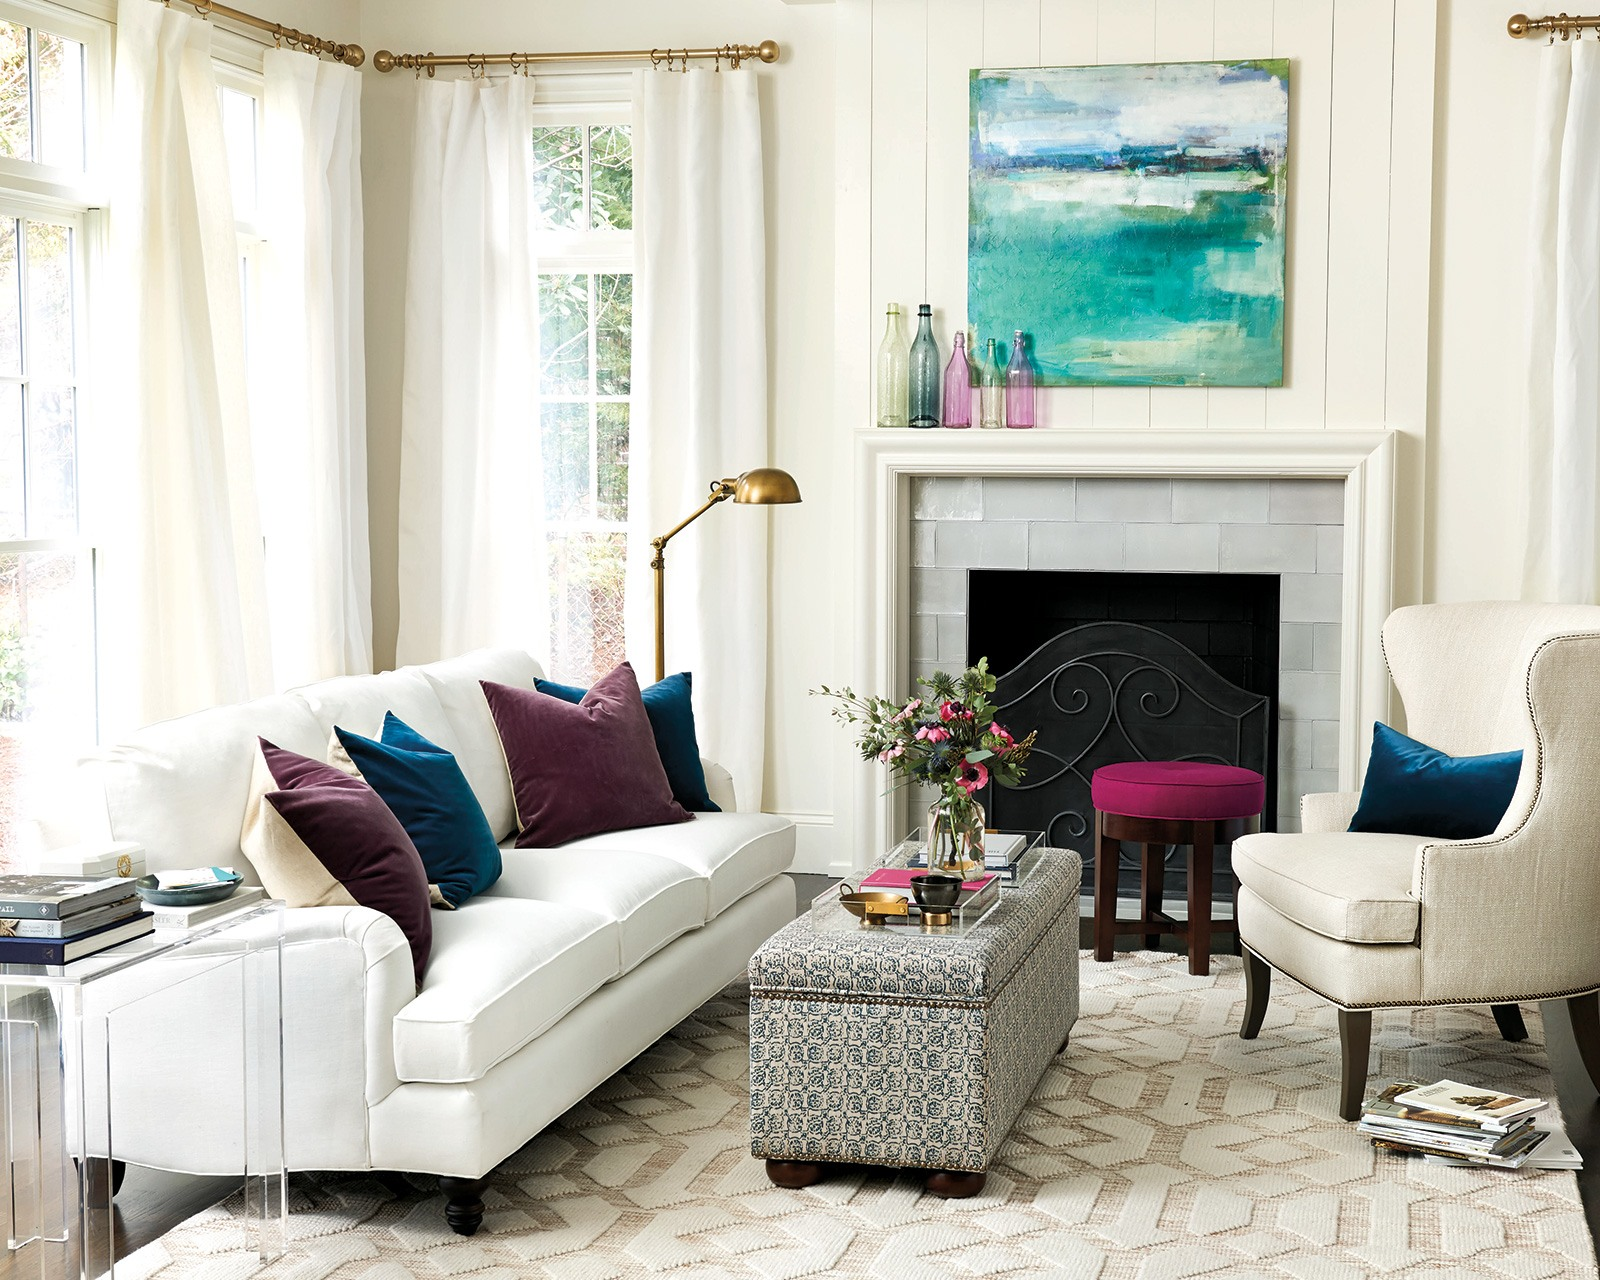 Enchanting Living Room With Ottoman Of Bring In A Leggier Piece Like